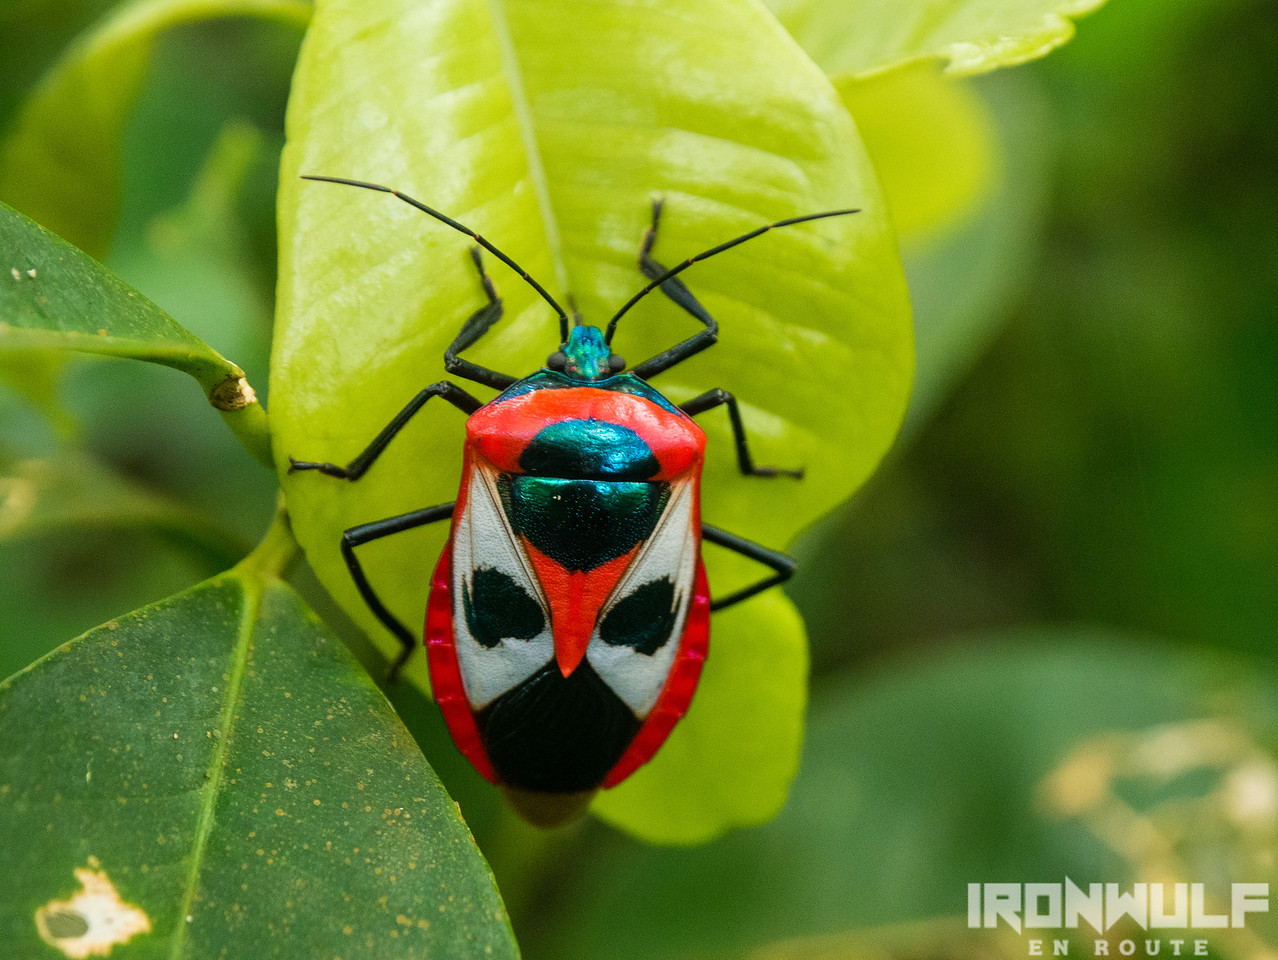 A shield bug on the trail